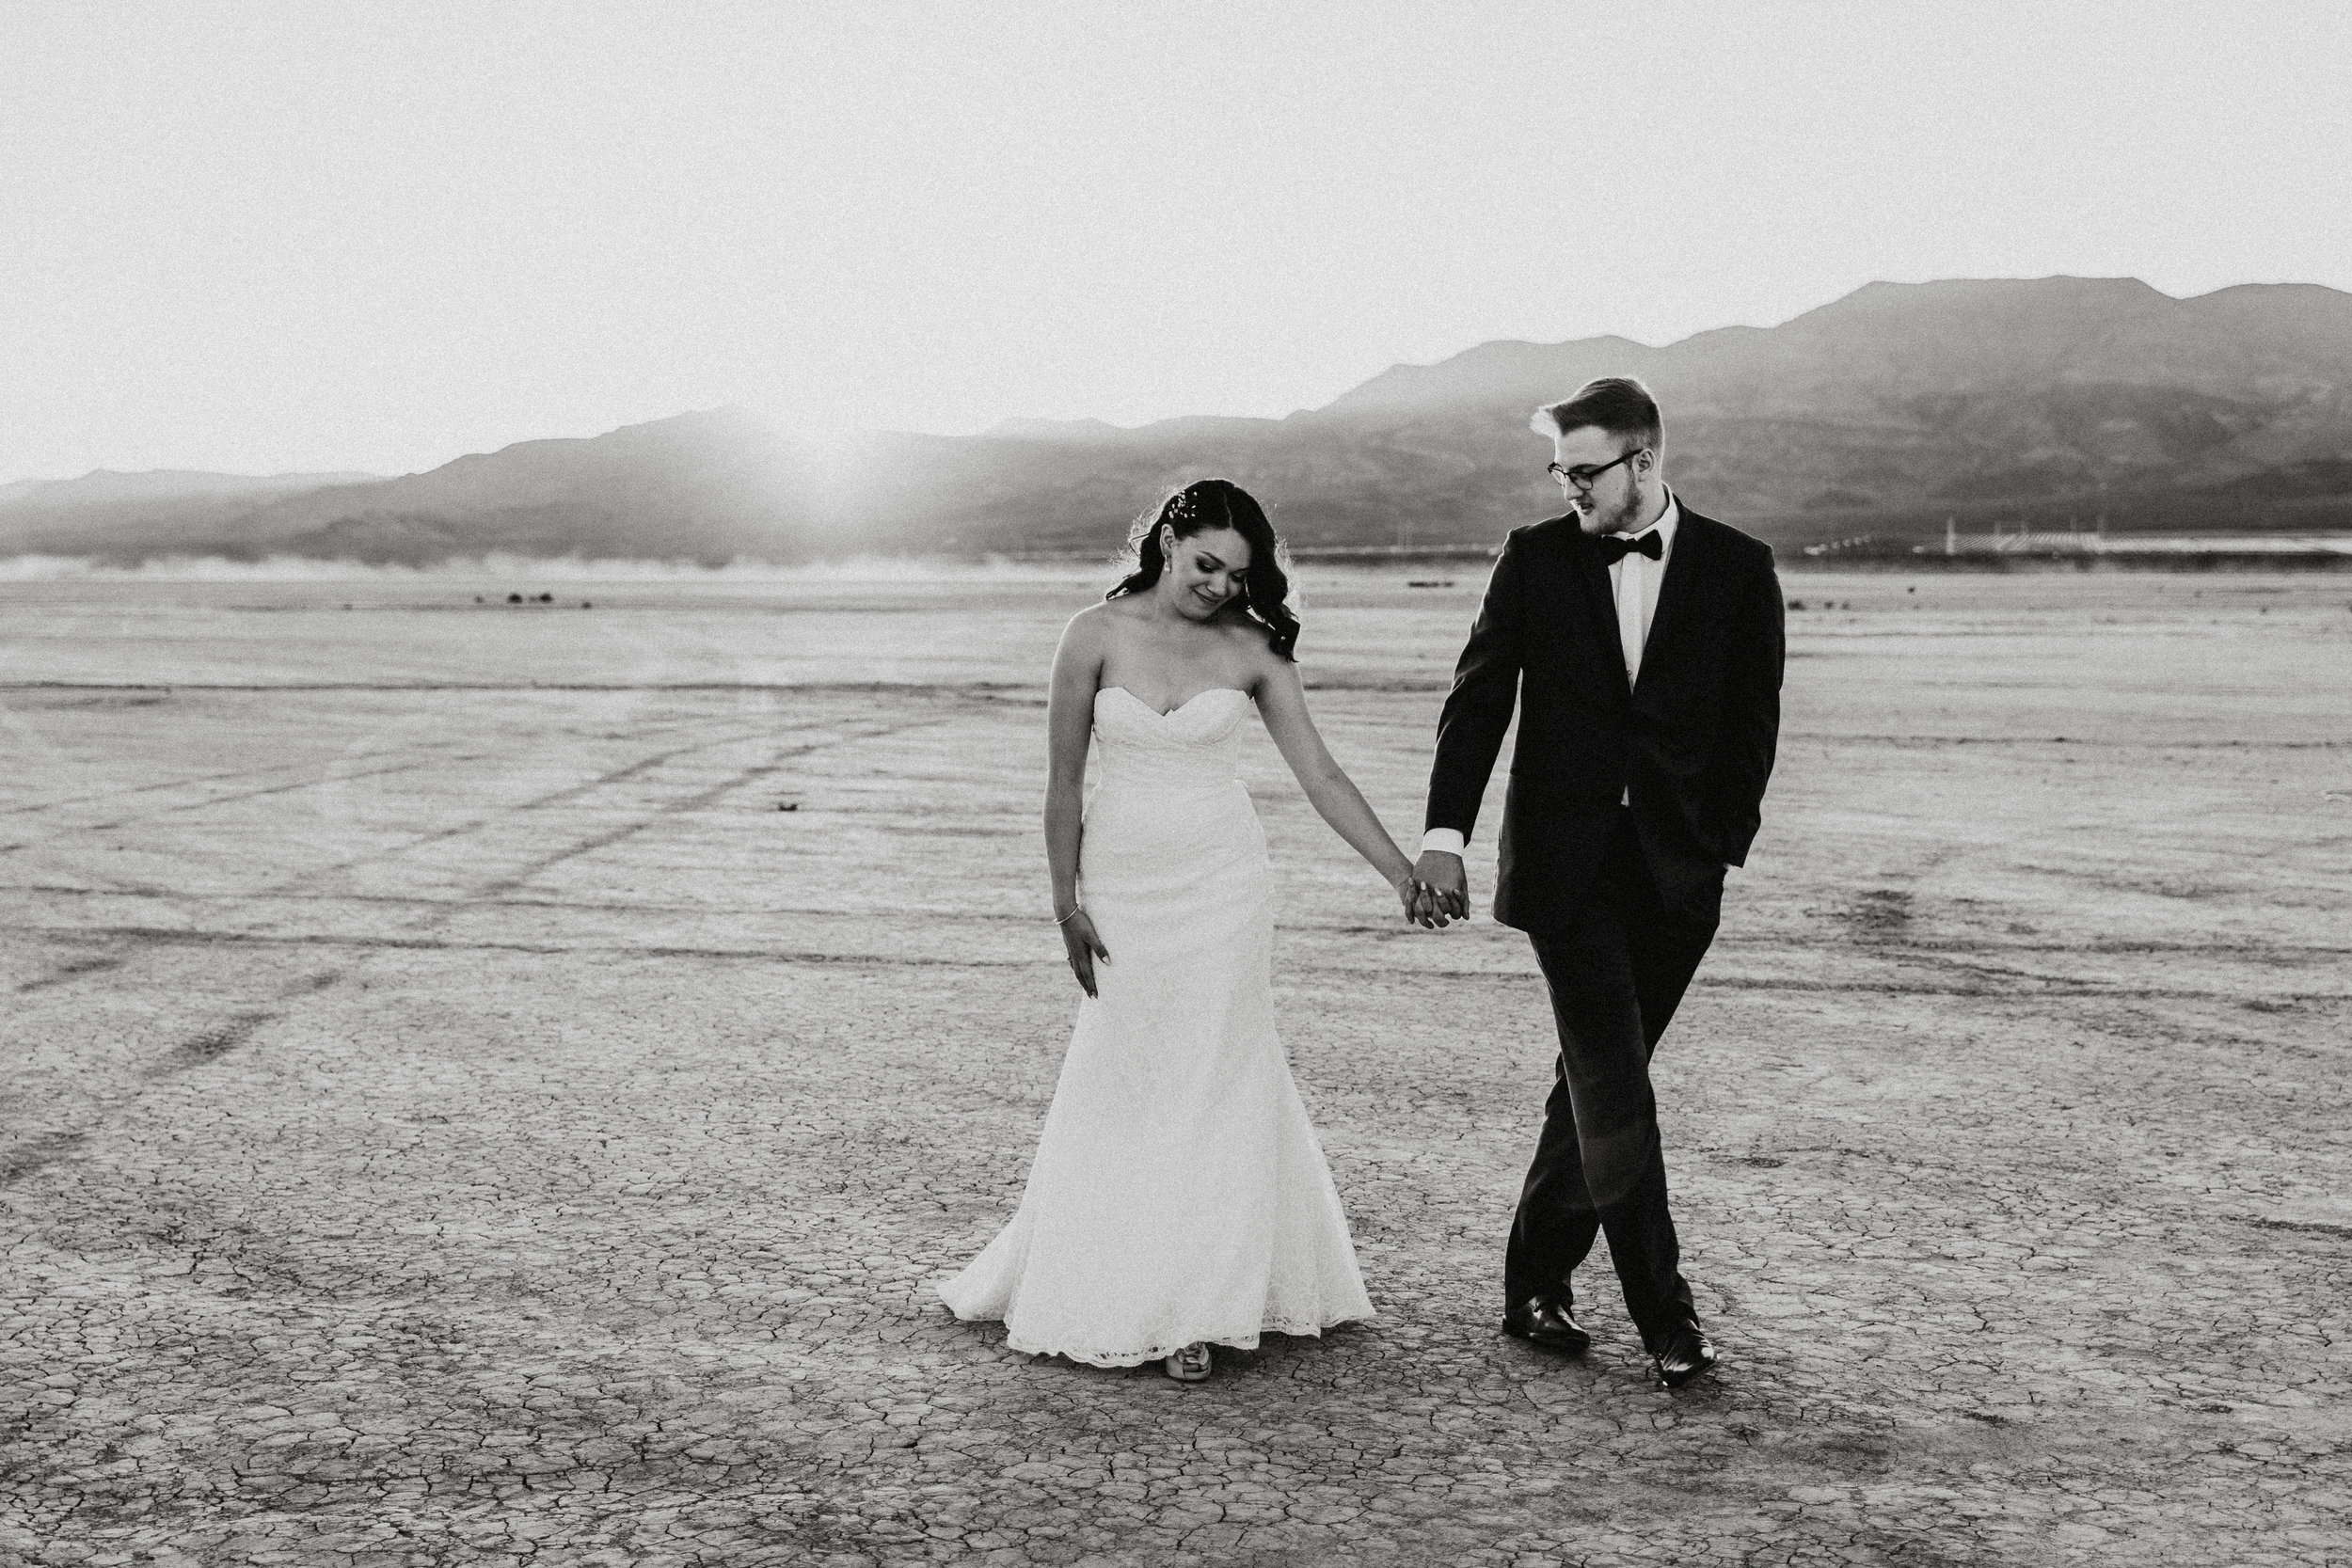 Las Vegas Wedding Photography - Henderson, NV - Jessica and Daniel - Kamra Fuller Photography - Bridal Session - Portrait Session - First Look - Couple's Poses - Seattle Wedding Photographer - PNW Elopement Photographer